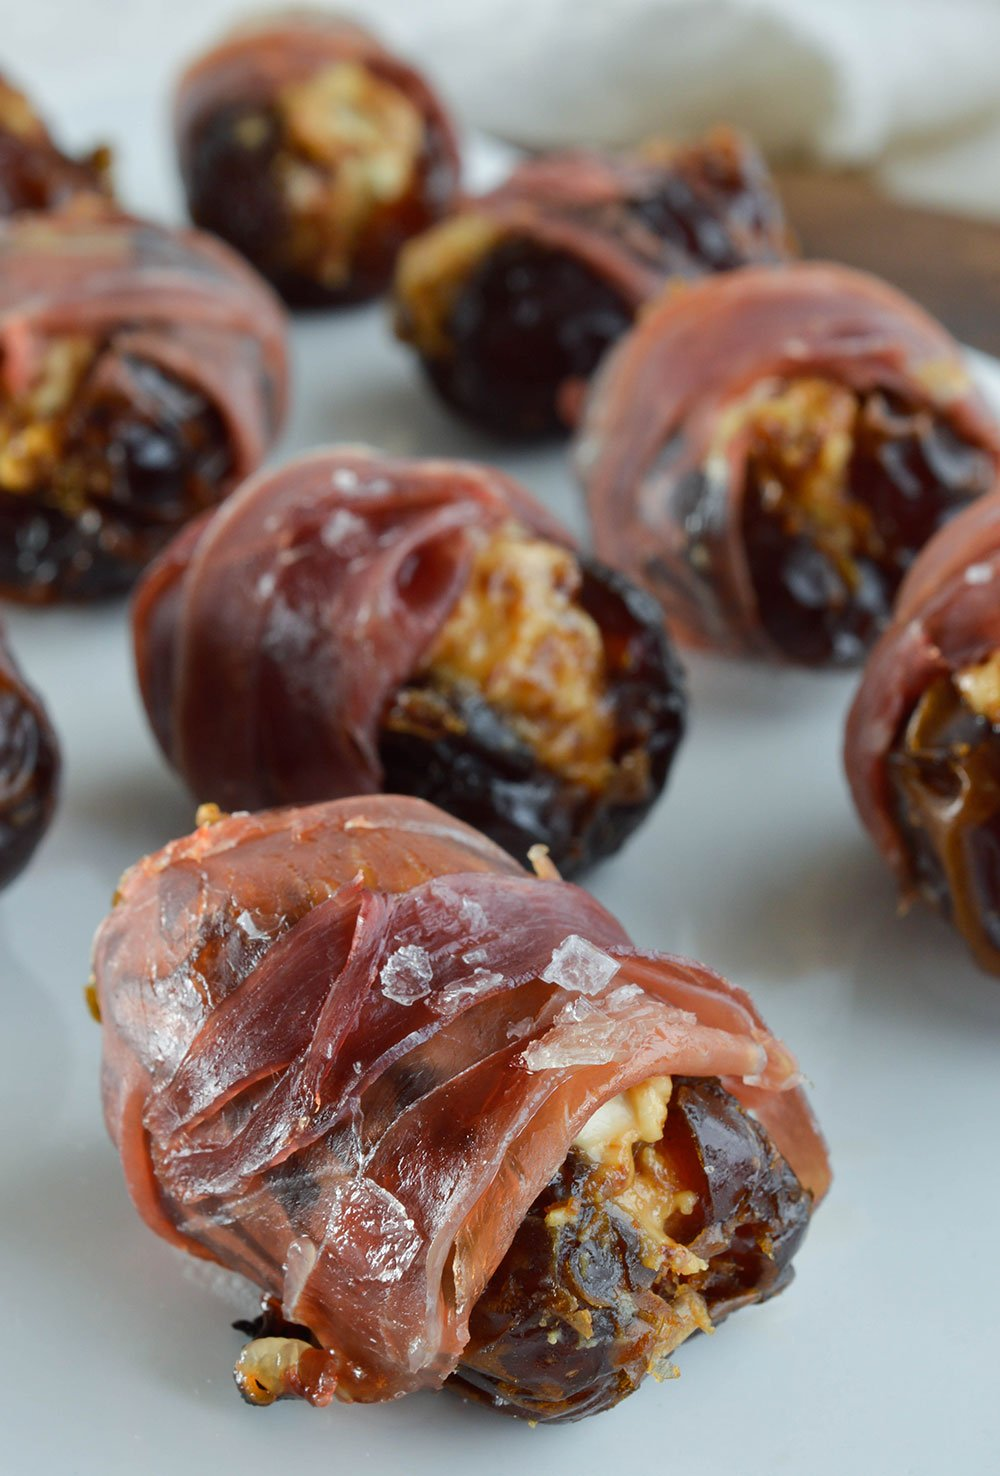 Prosciutto wrapped dates in Brisbane